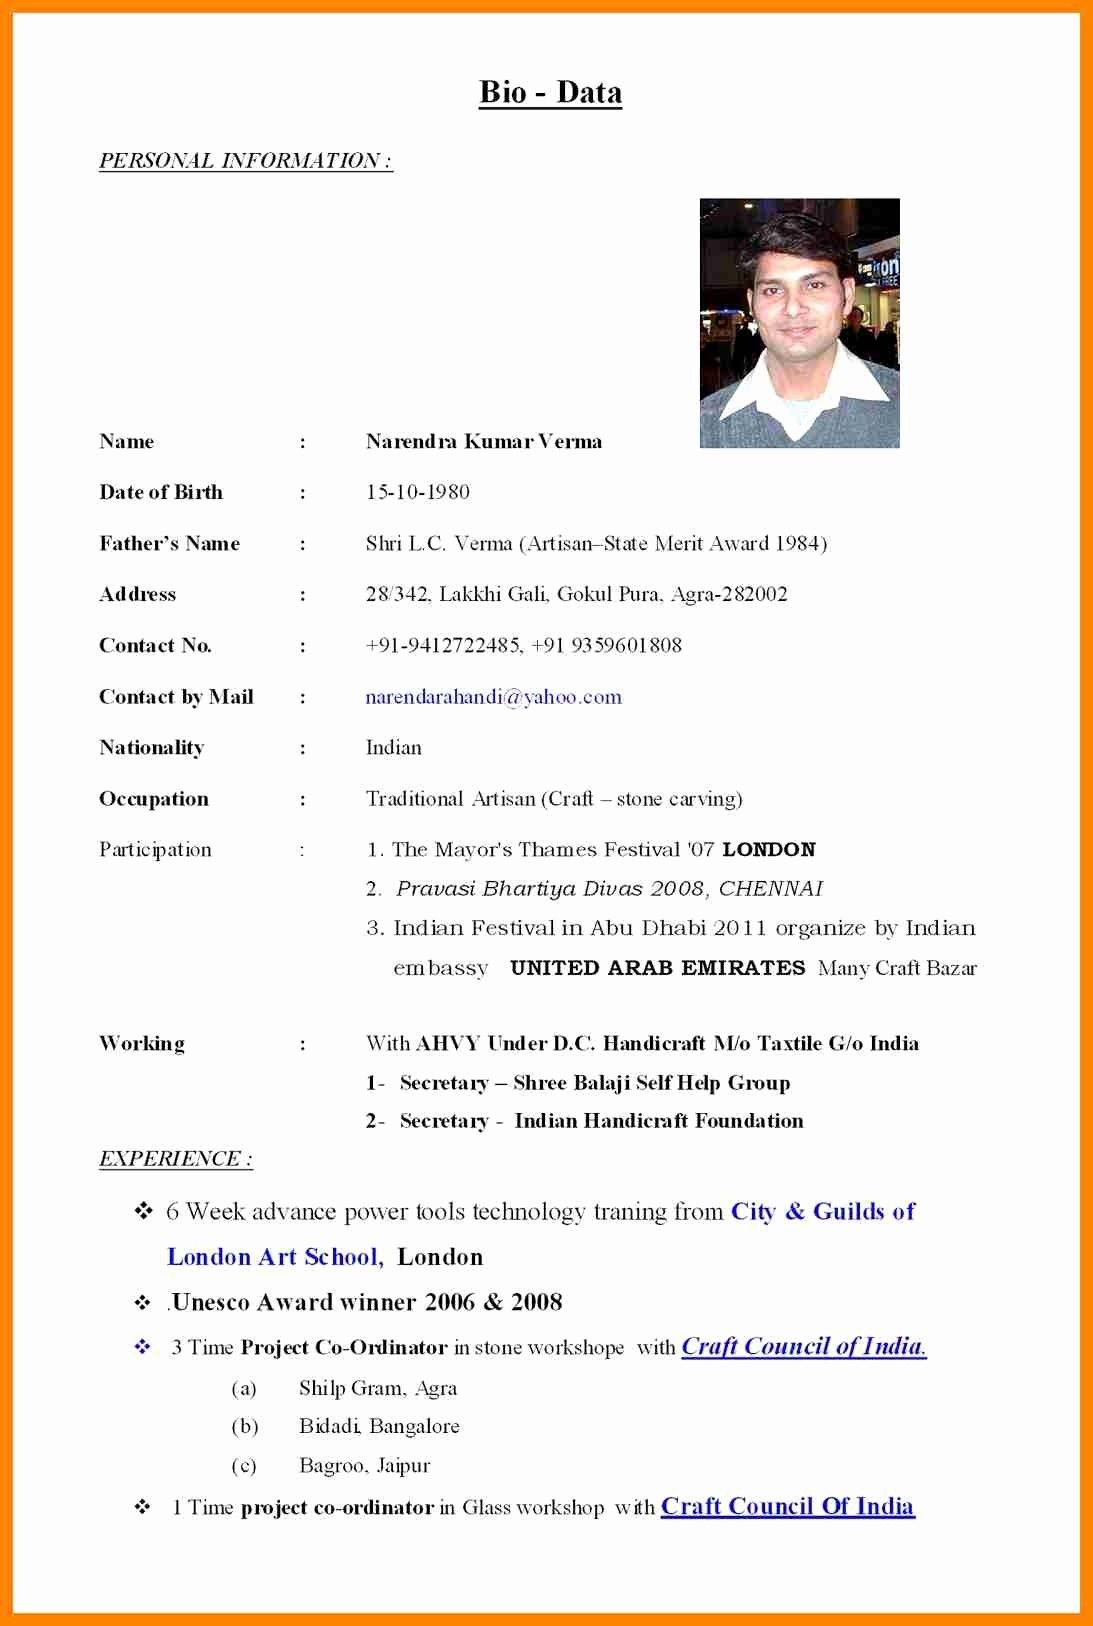 wedding resume format elegant marriage pdf within marriage biodata template for boy